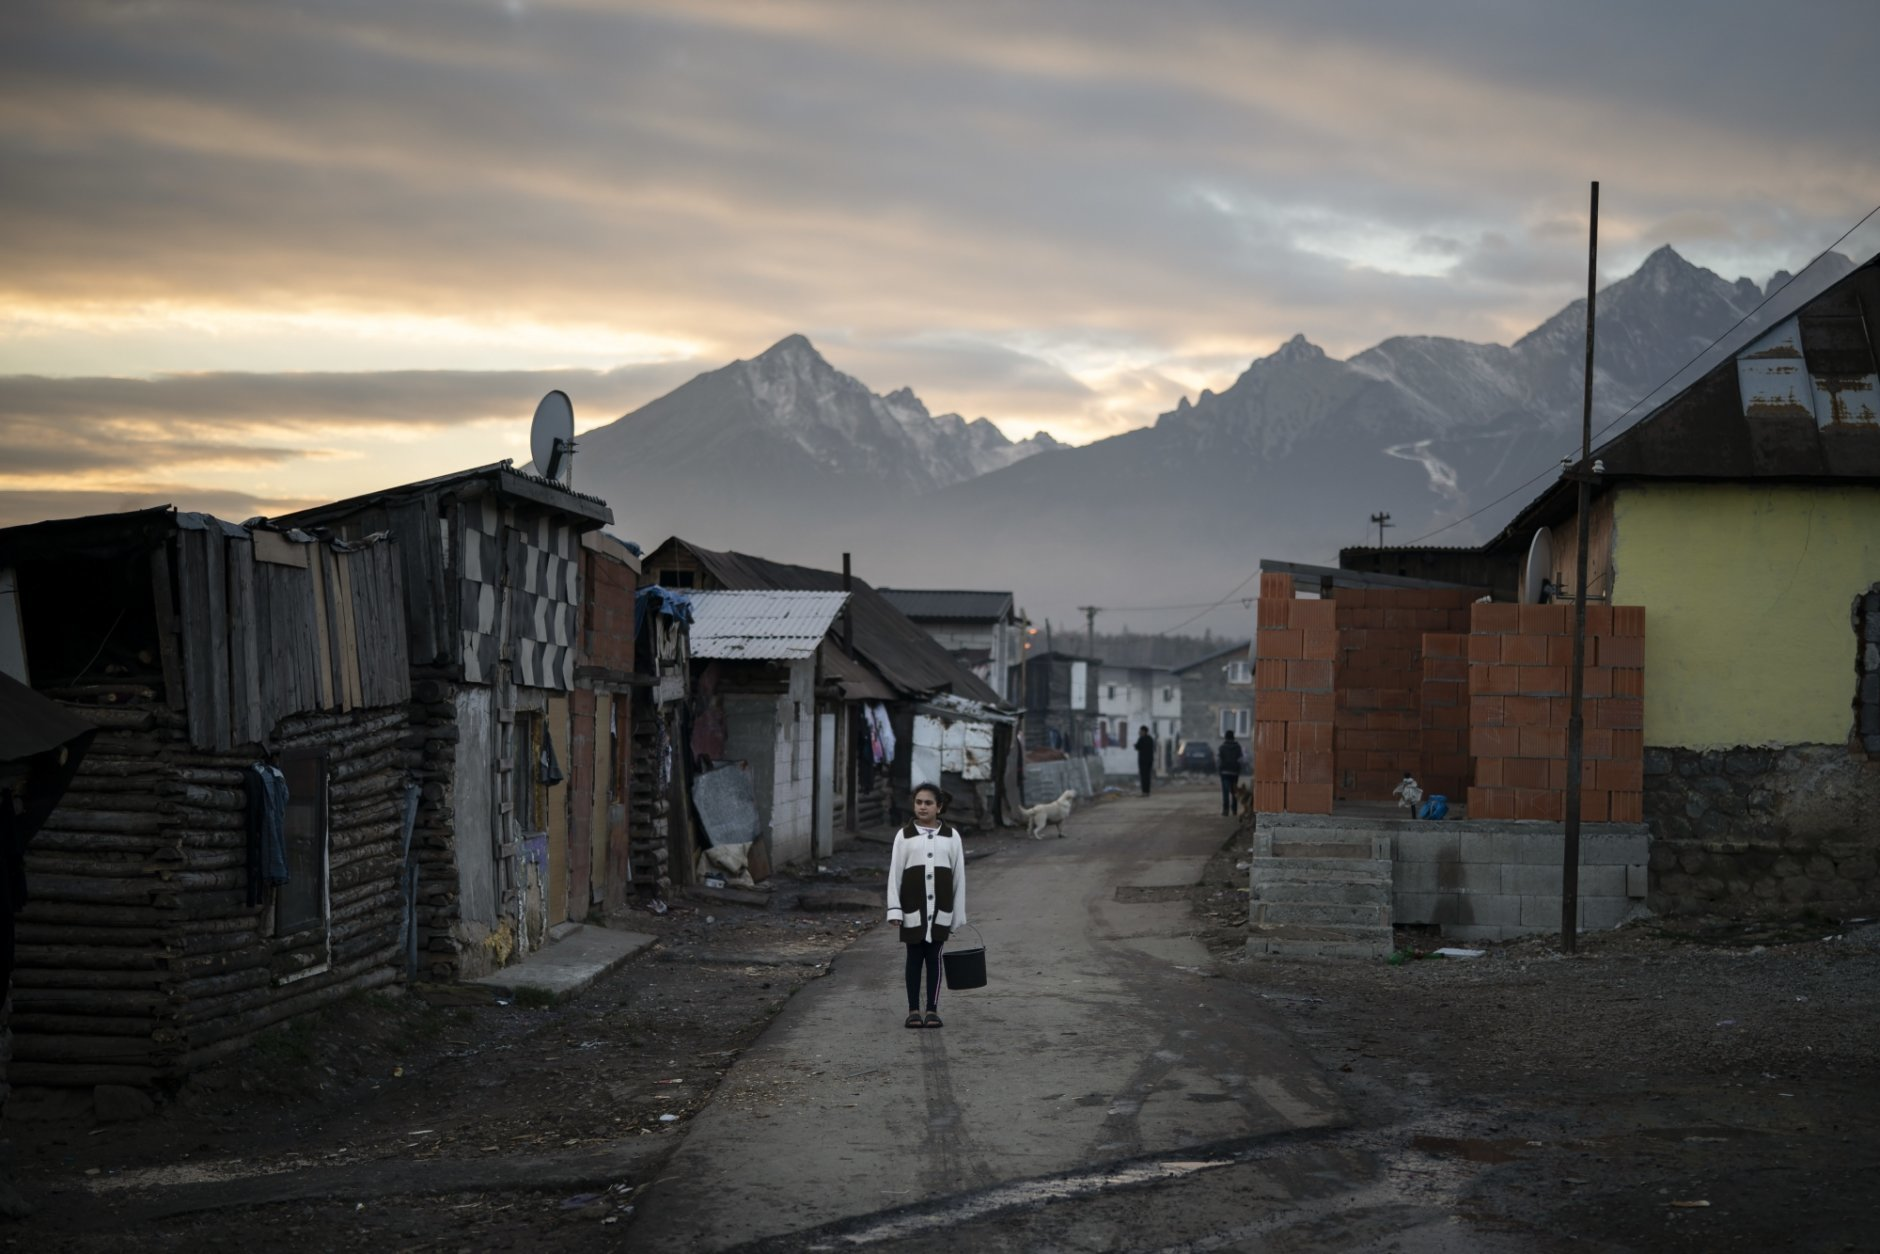 In this Nov. 16, 2018, photo, a Roma girl holds with a bucket to collect water in a village near Kezmarok, Slovakia. An investigation by The Associated Press has found that women and their newborns in Slovakia are routinely, unjustifiably and illegally detained in hospitals across the European Union country. Roma women, vulnerable to racist abuse and physical violence, suffer particularly.  They're also often poor, and mothers who leave hospitals before doctors grant permission forfeit their right to a significant government childbirth allowance of several hundred euros. (AP Photo/Felipe Dana)